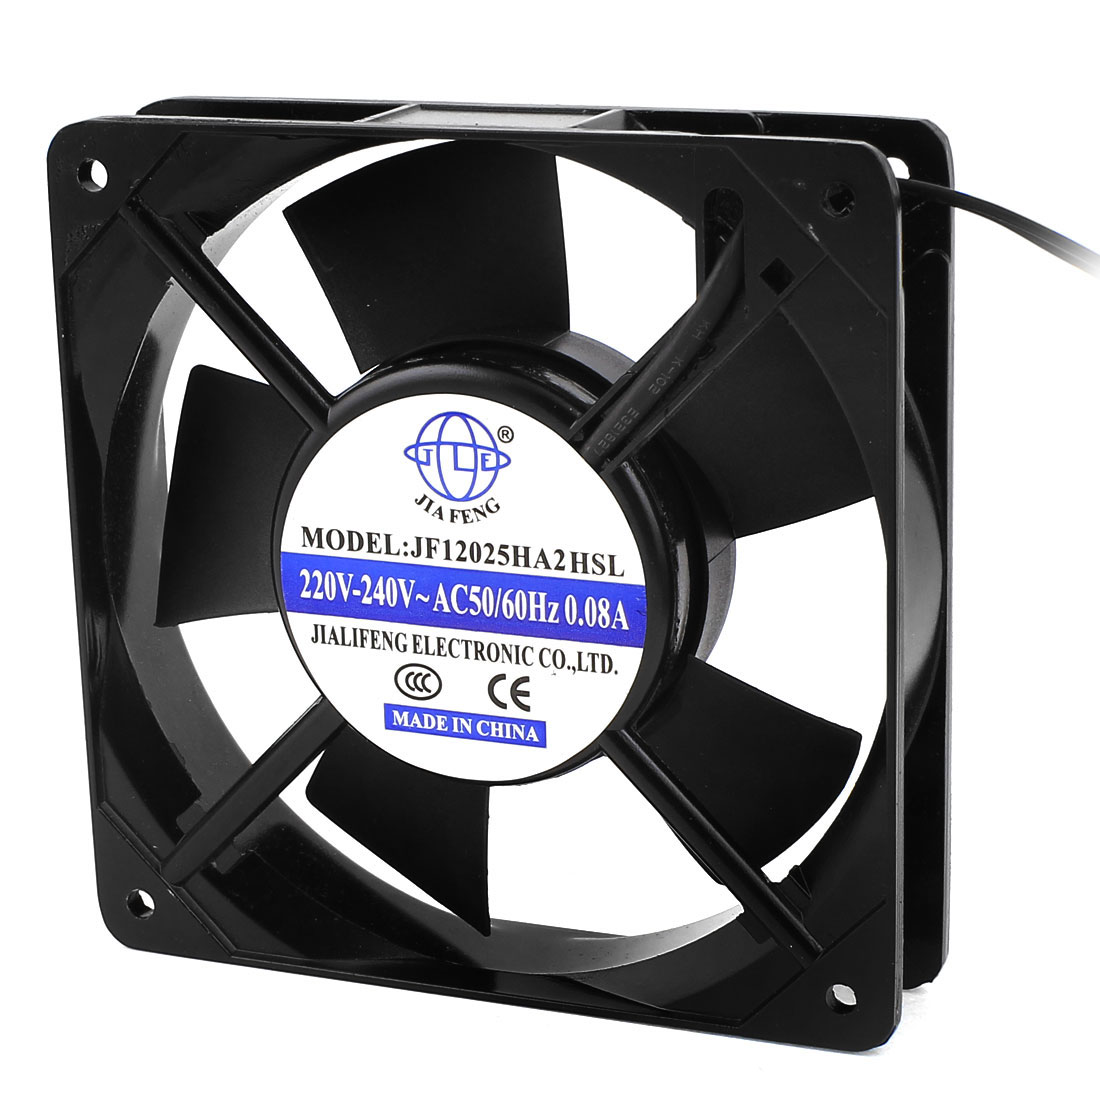 AC 220V-240V 0.08A 2 Wires Sleeve Bearing Axial Cooling Fan 120mm x 25mm 12025